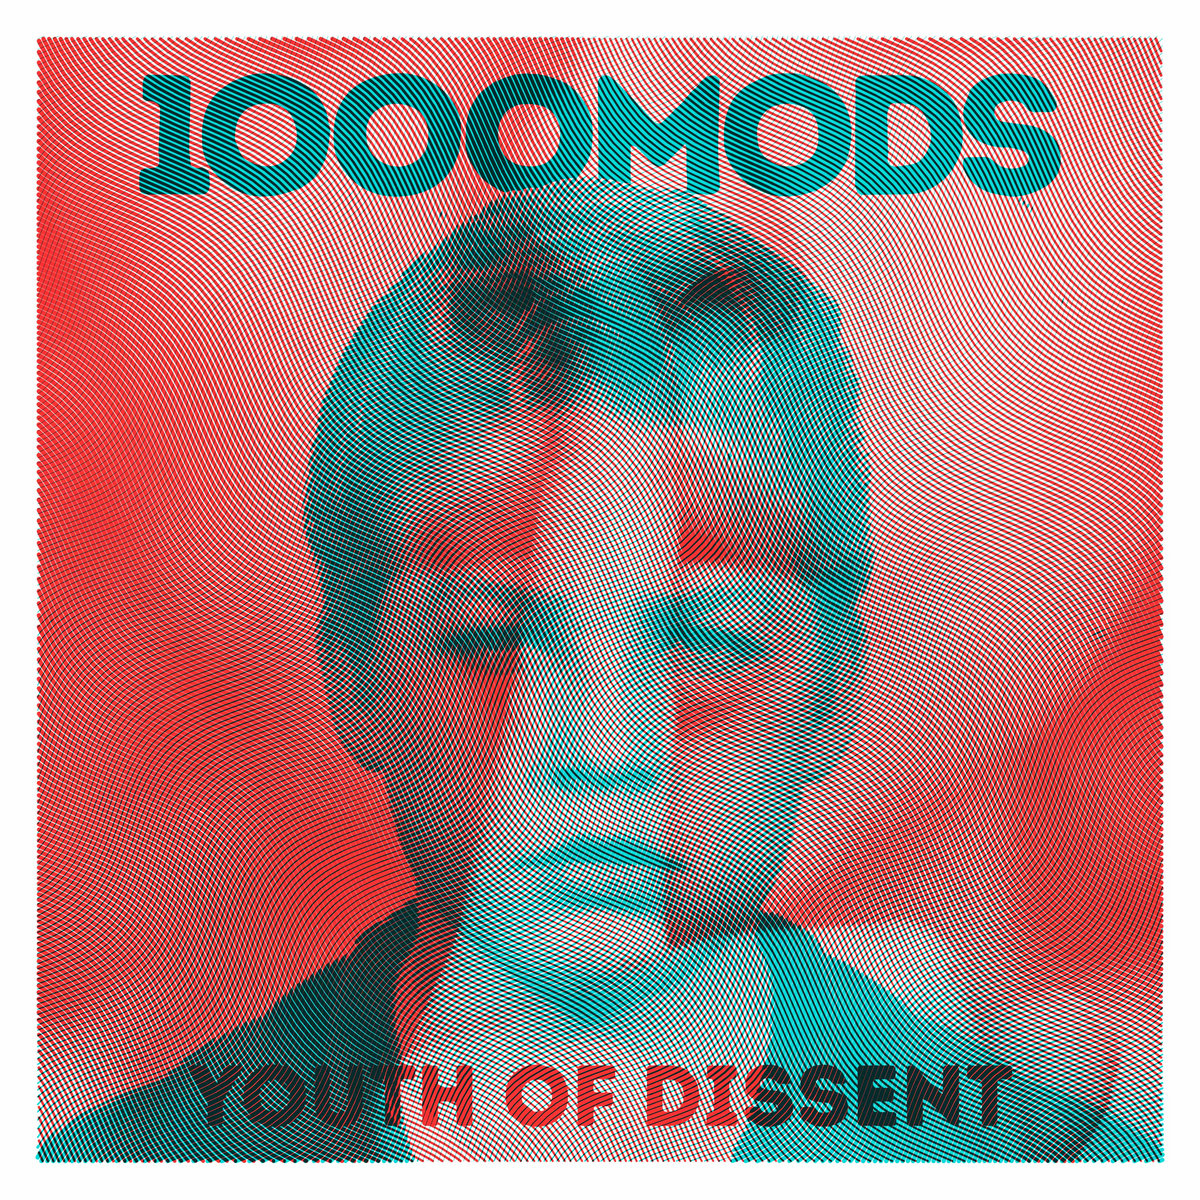 1000 Mods - Youth of dissent 2LP